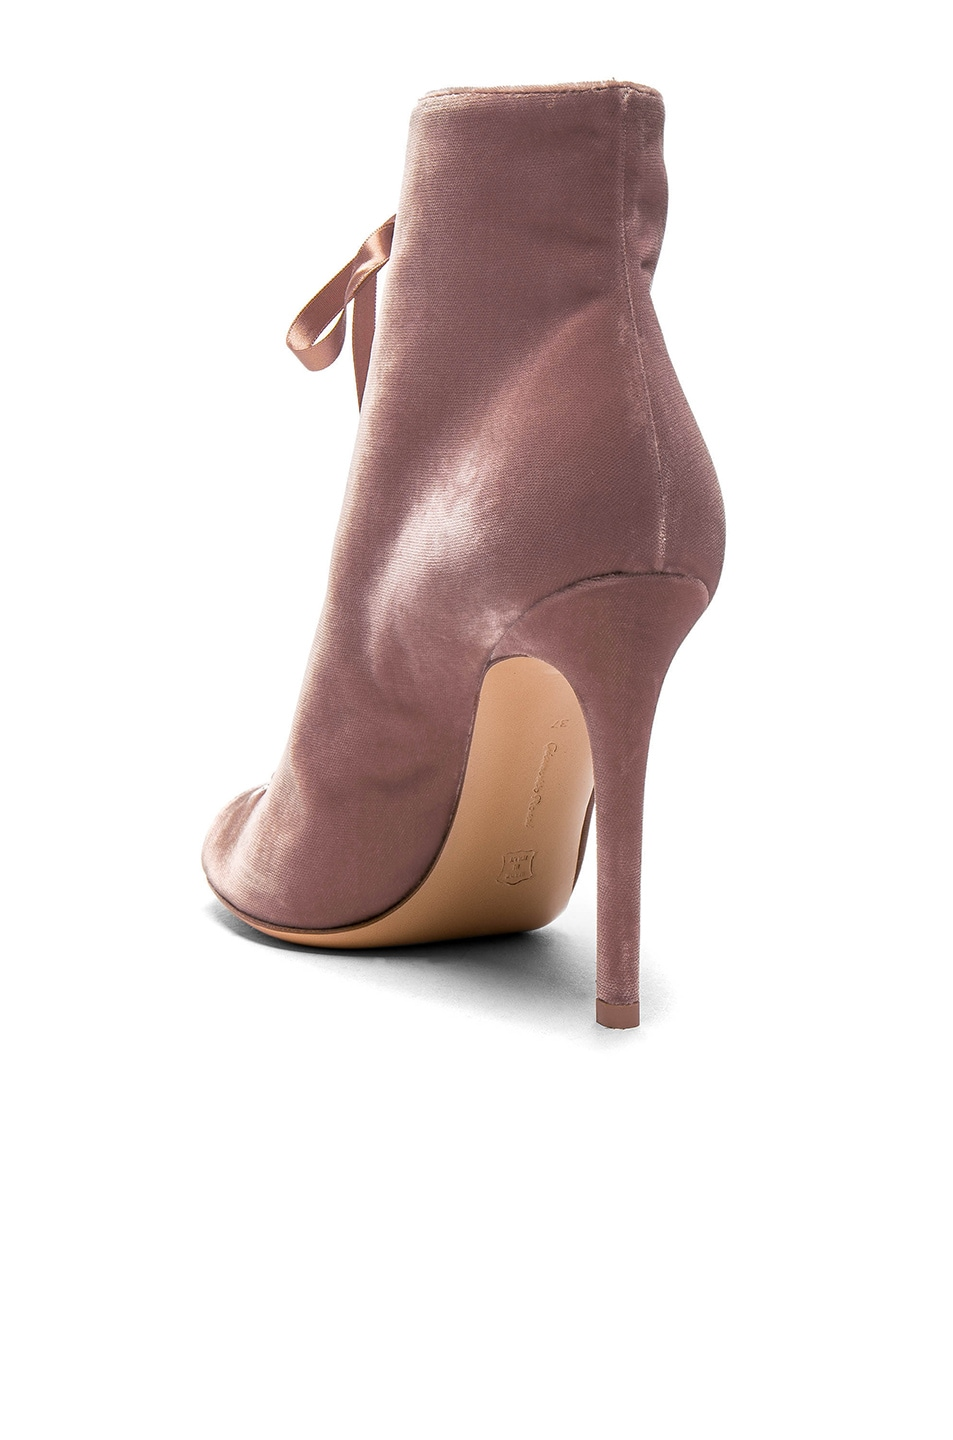 Image 3 of Gianvito Rossi for FWRD Velvet Marie Lace Up Booties in Rosie